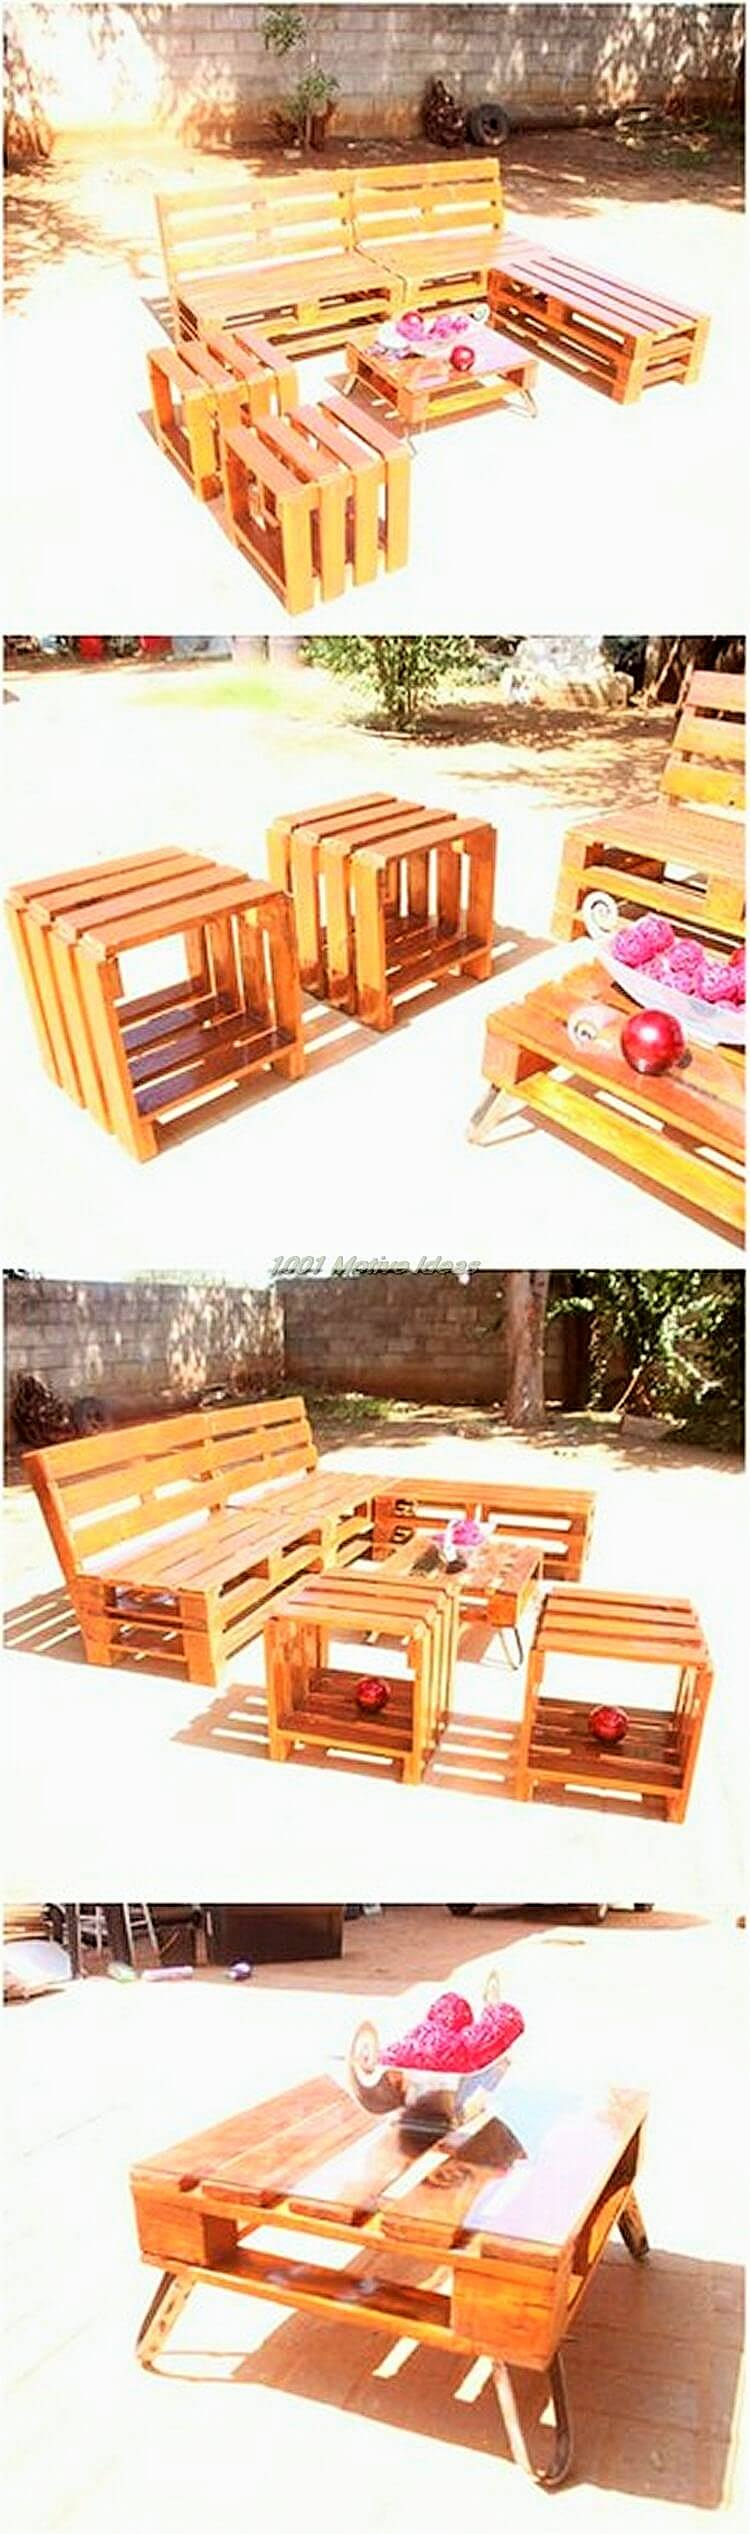 wooden-Pallet-Banch-furniture-Project-Ideas-004